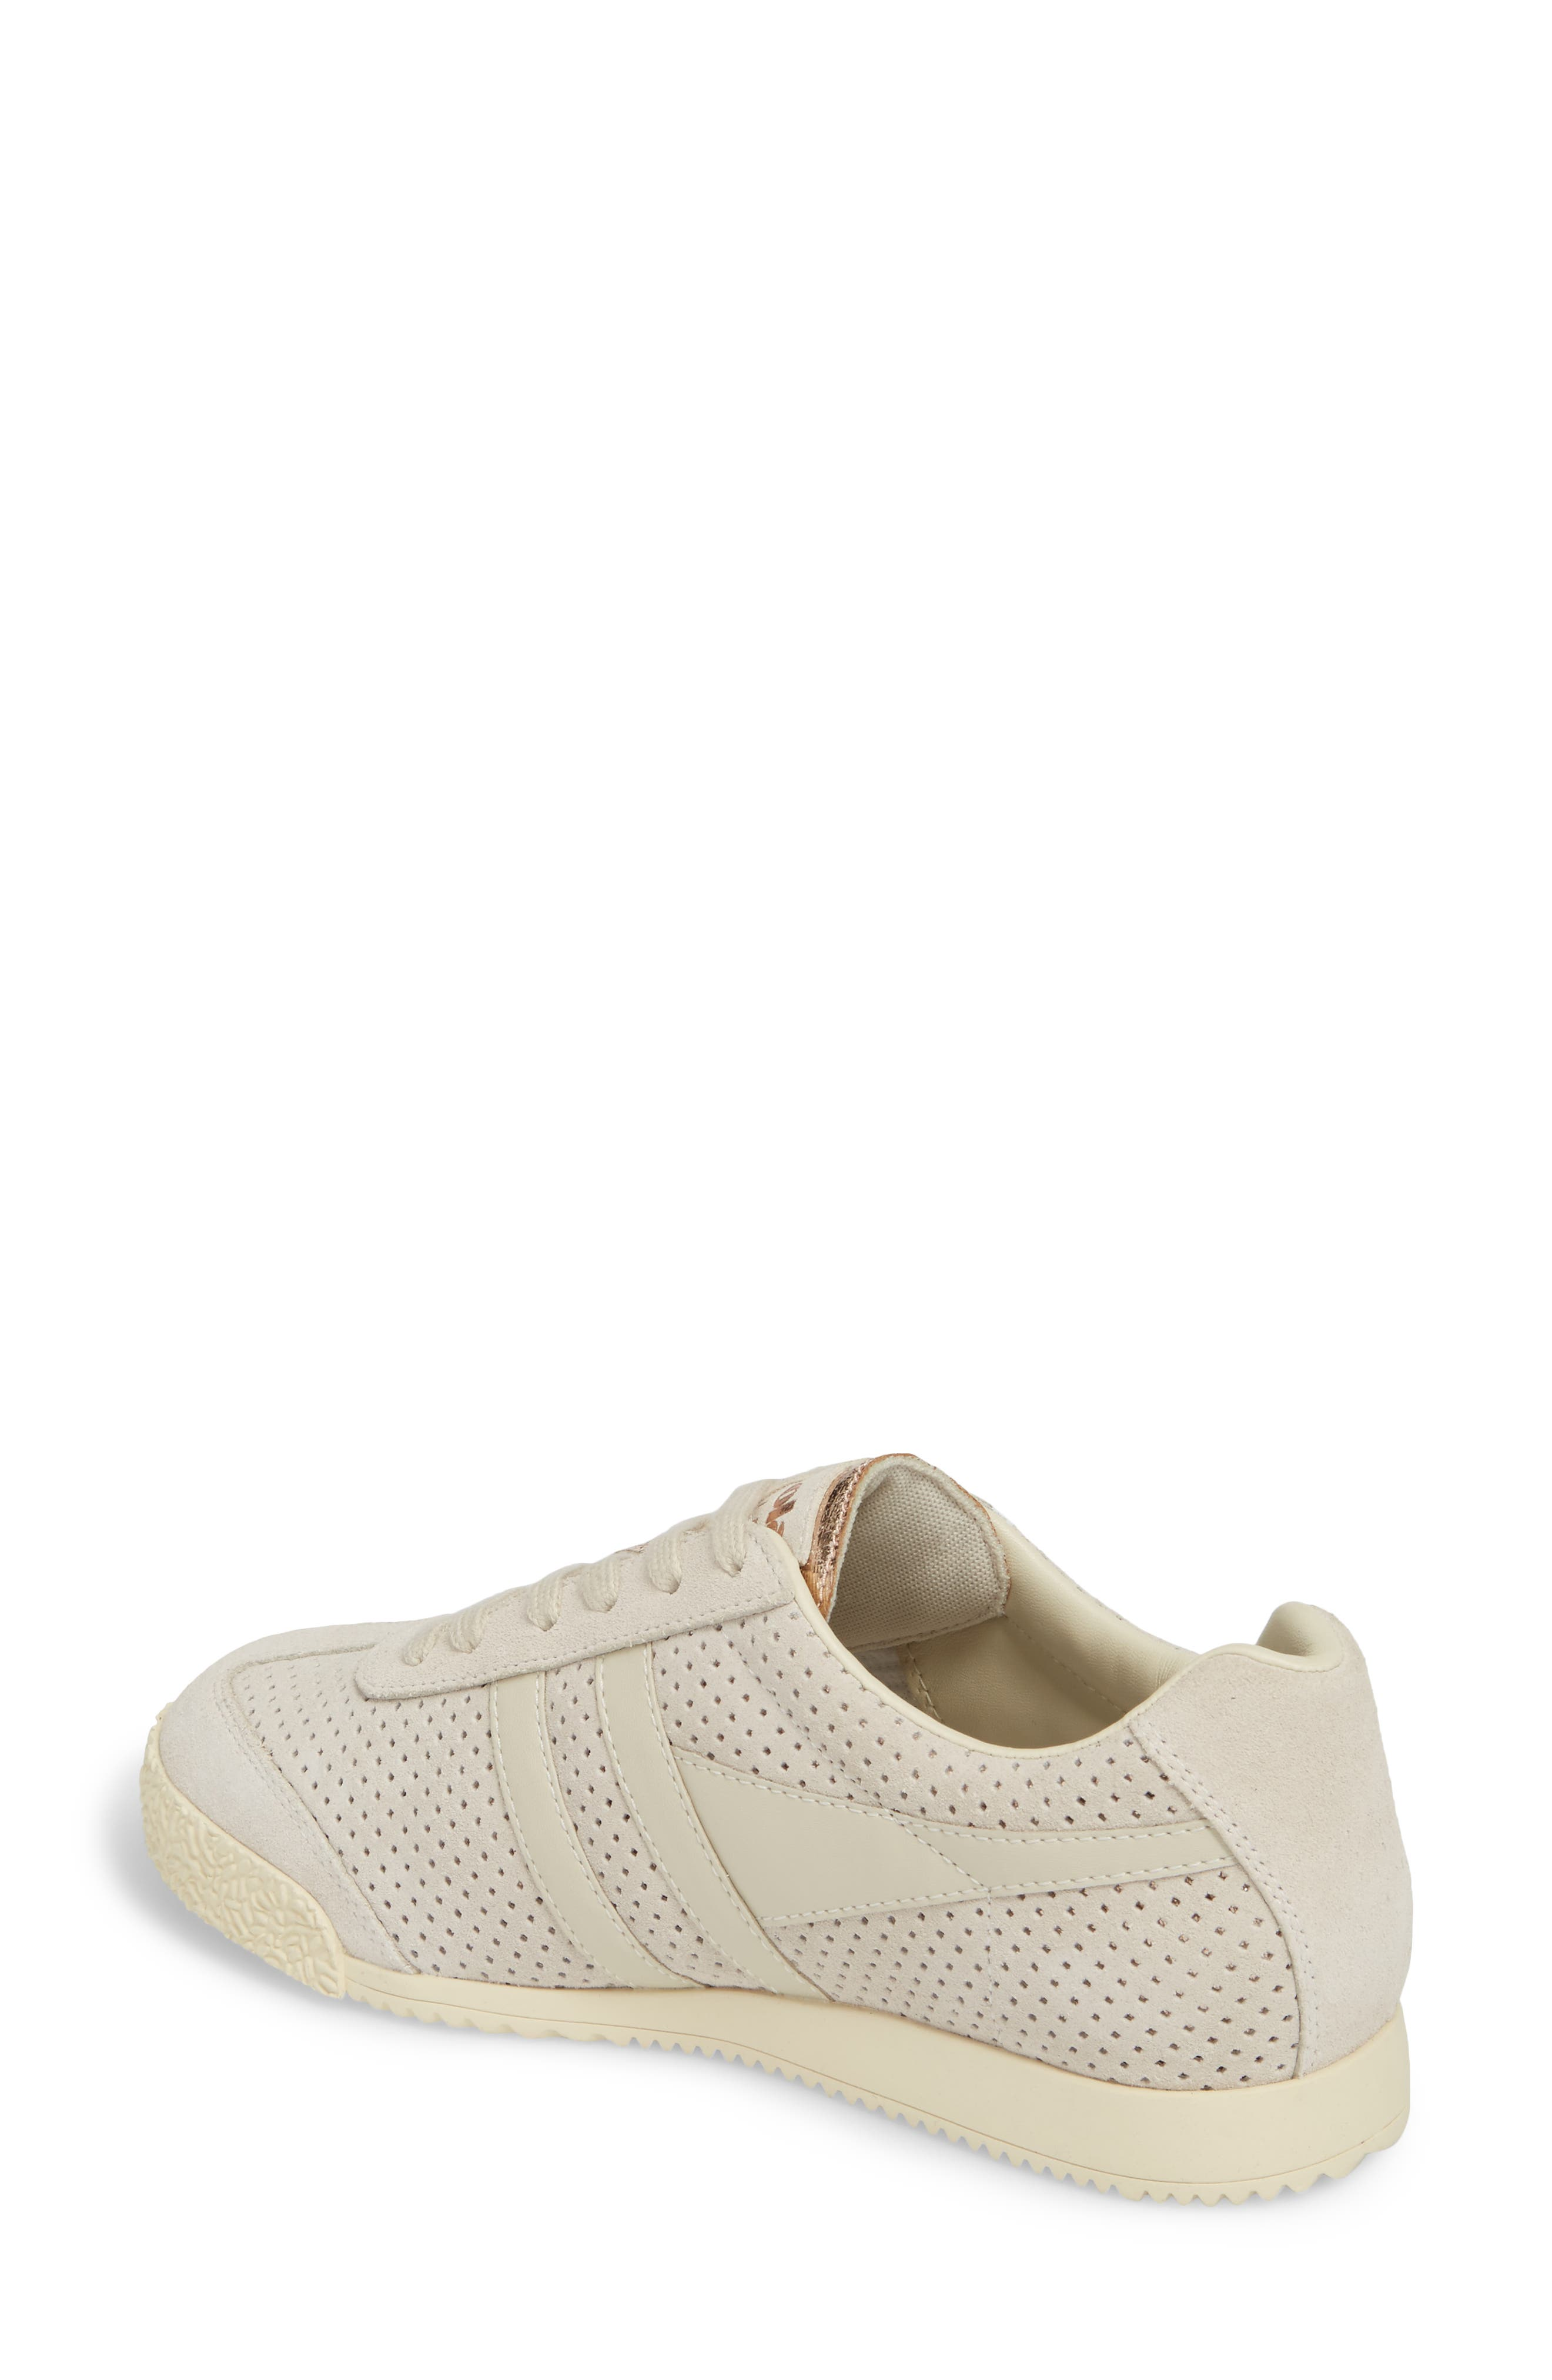 Harrier Glimmer Suede Low Top Sneaker,                             Alternate thumbnail 2, color,                             WINDCHIME/ GOLD/ OFF WHITE